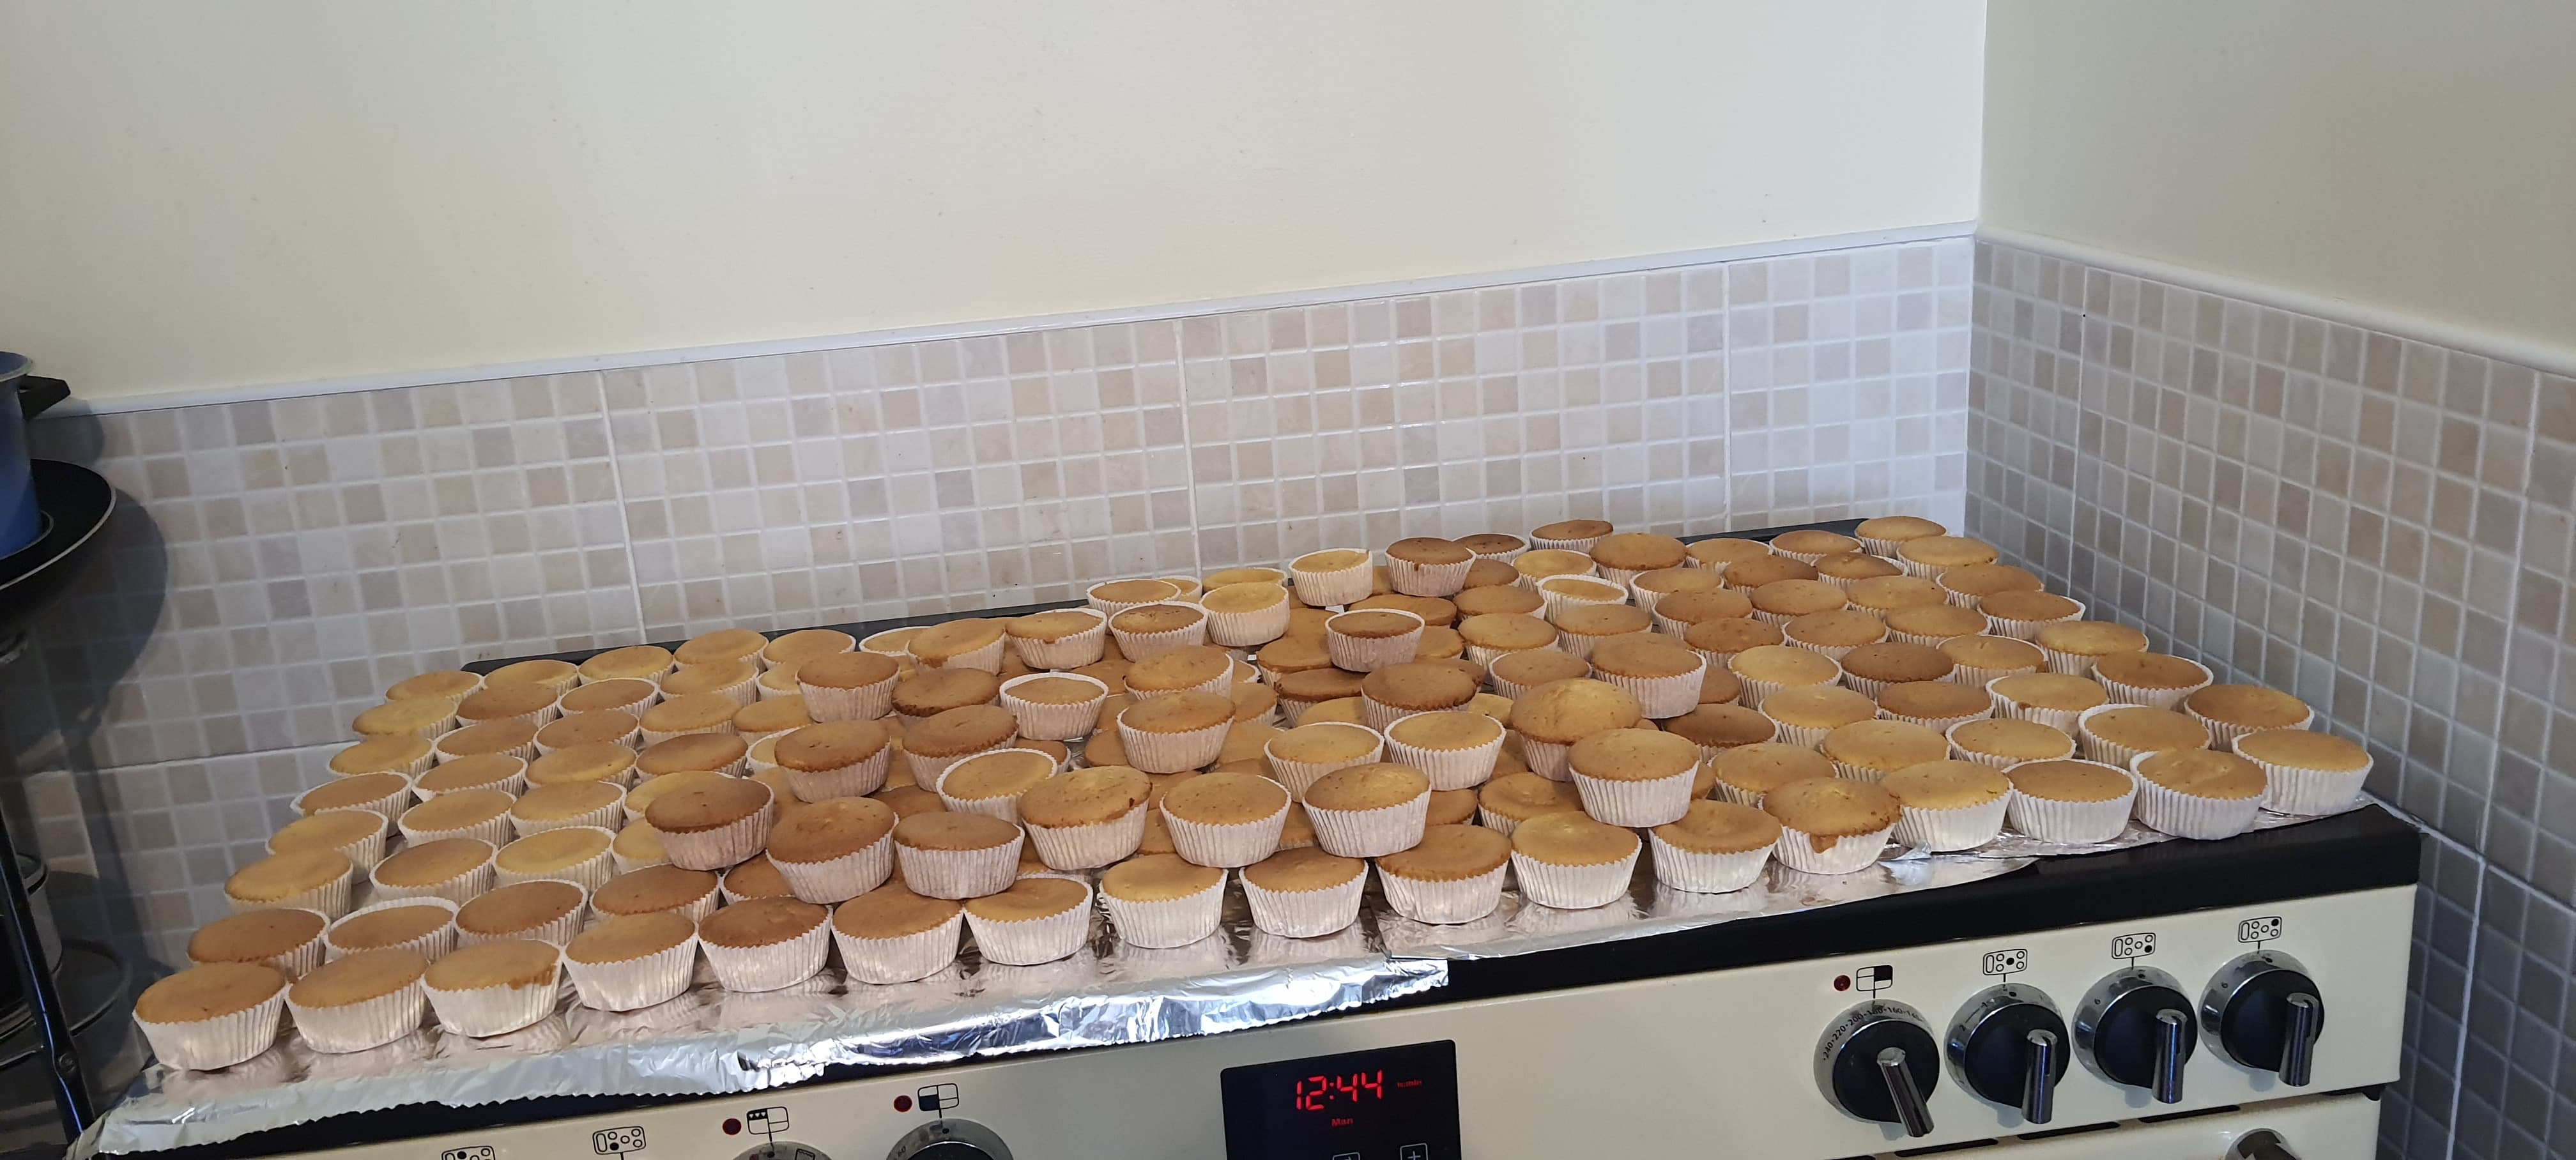 Joan's cake baking for her friends V.E afternoon tea boxes. 300 made in total!